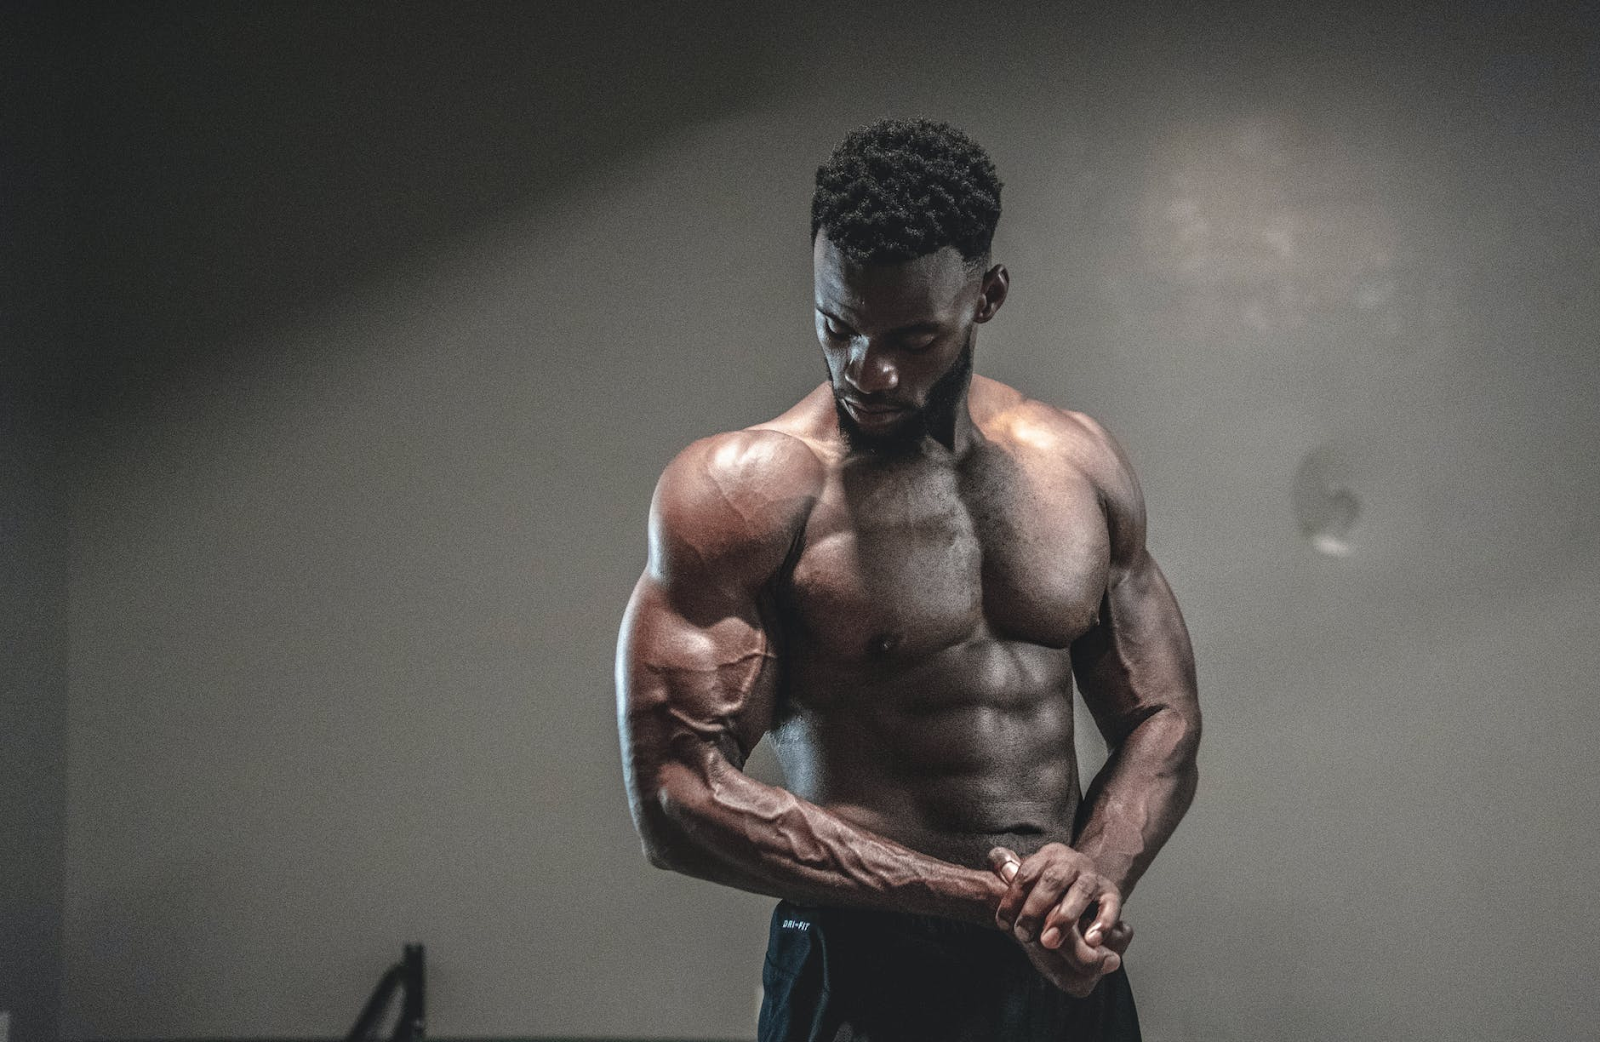 The Sports Archives Blog - The Sports Archives - 8 Essential Tips to Help You Gain Muscle Mass